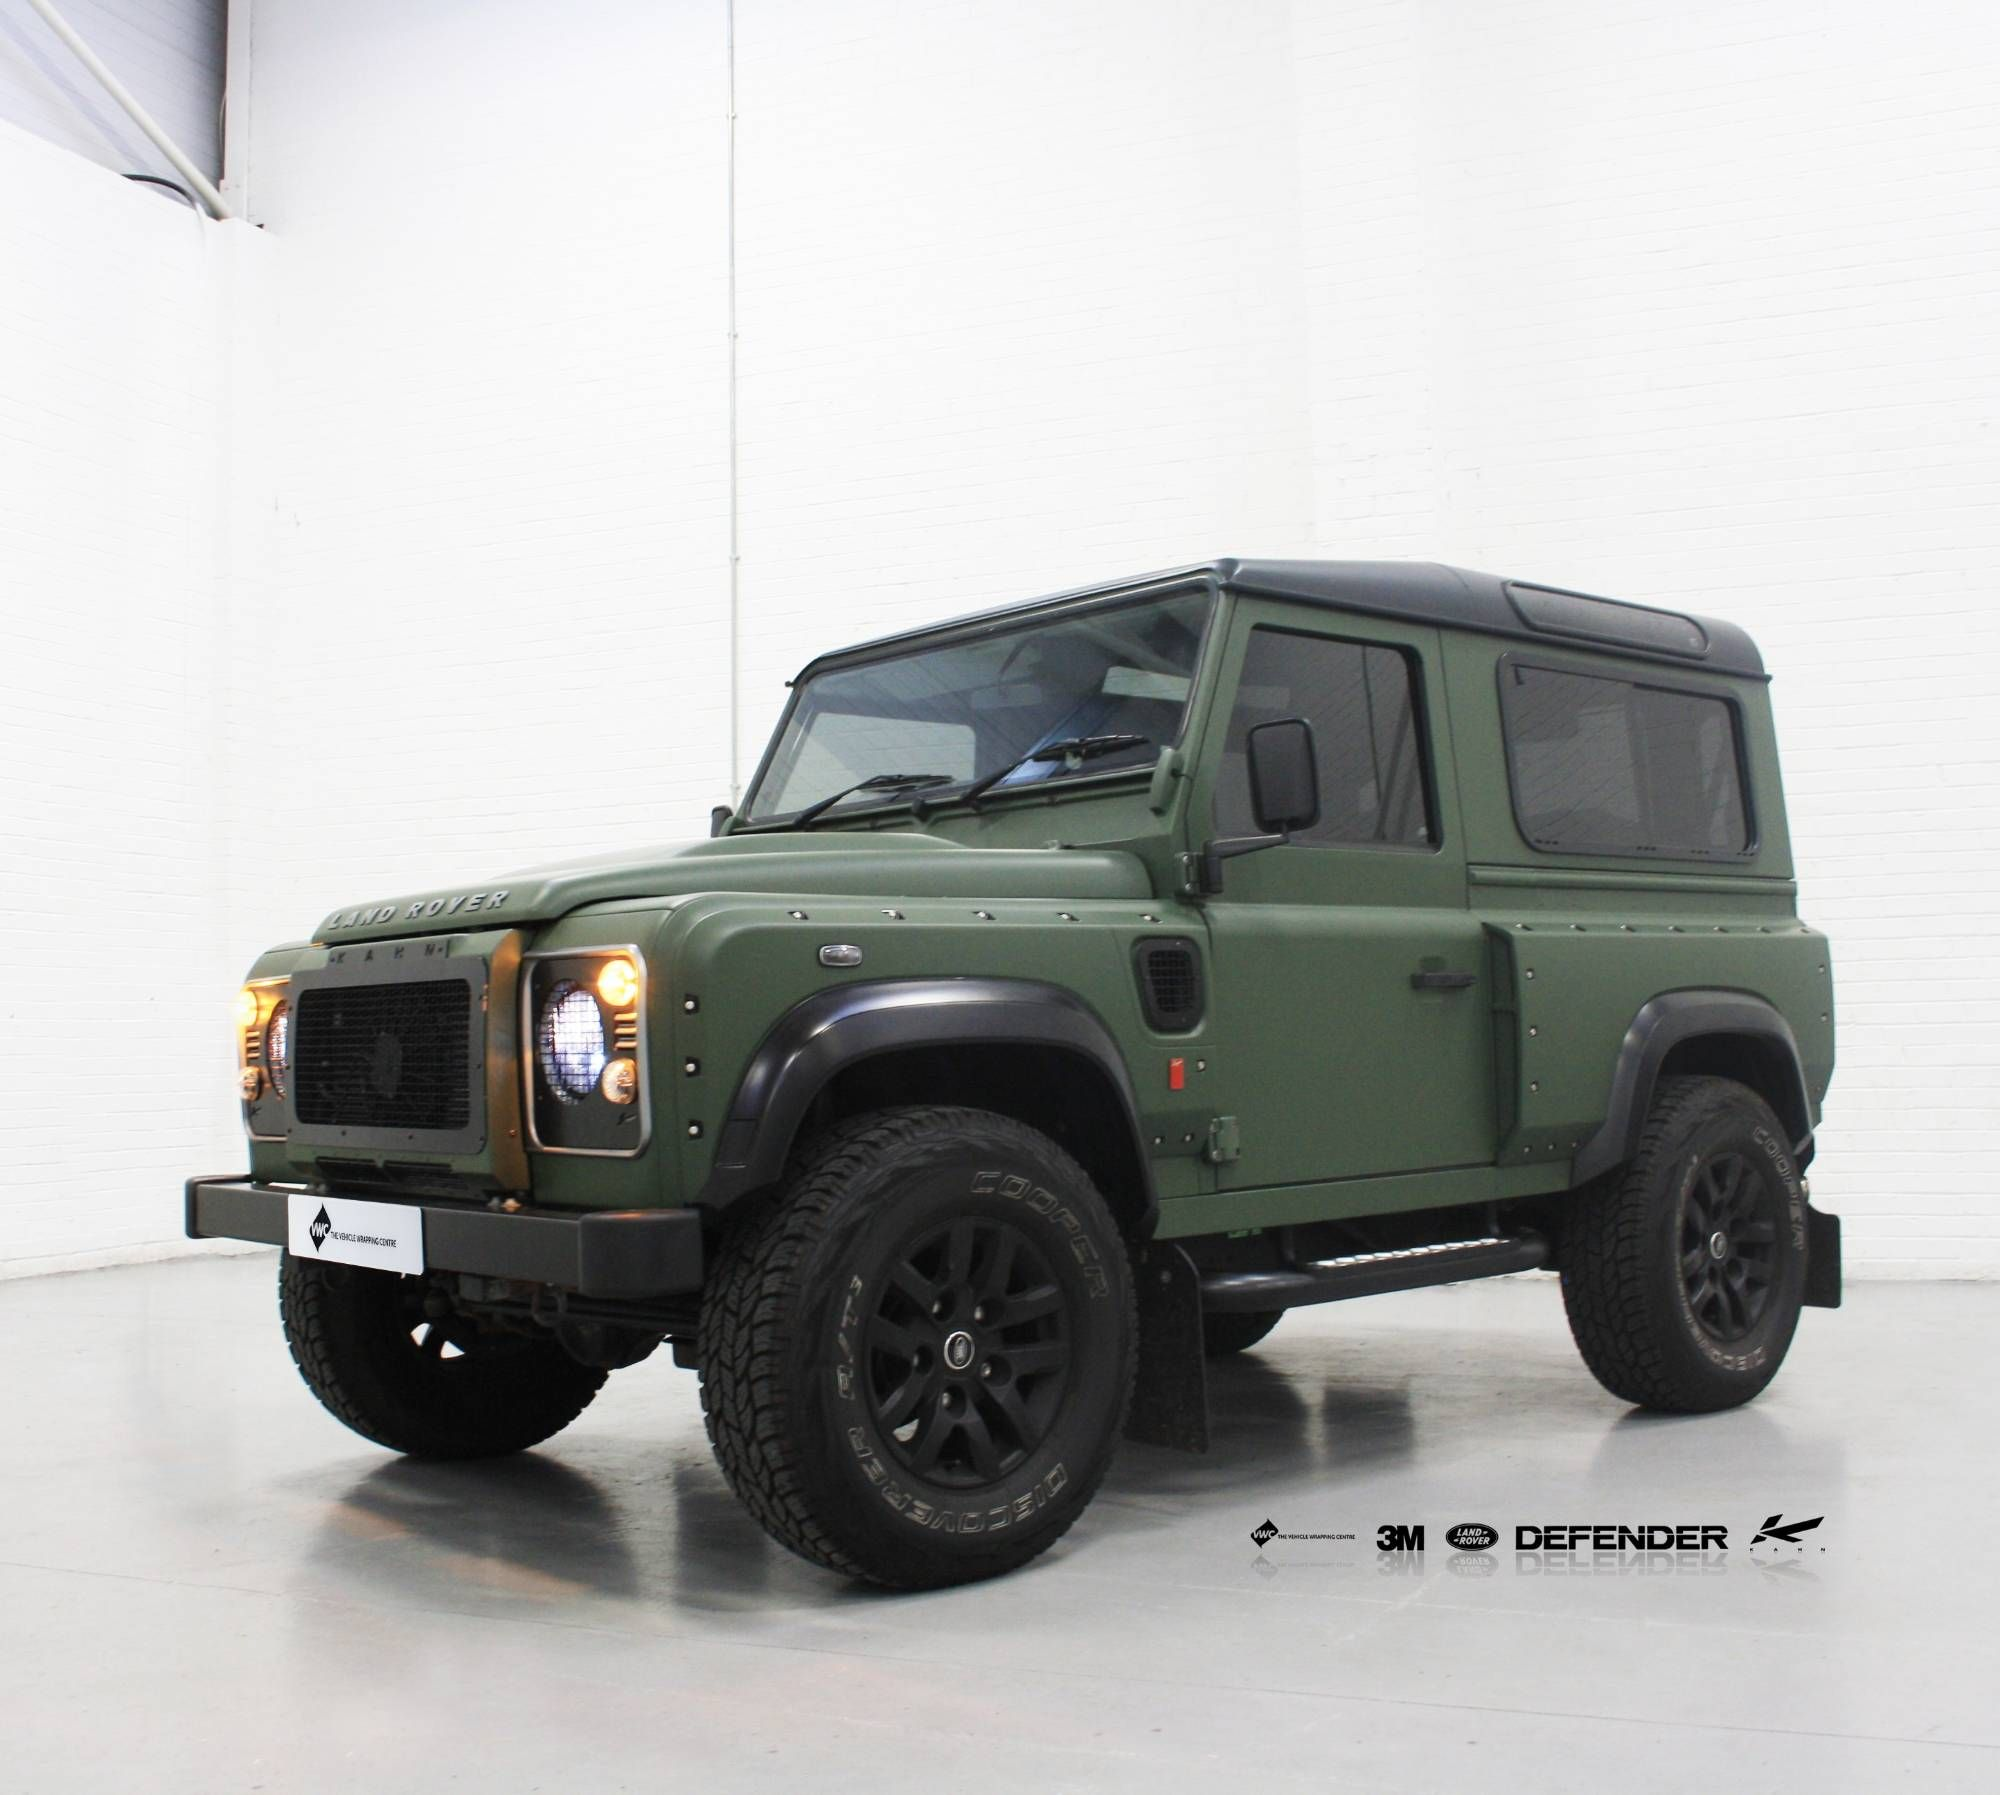 2013 land rover defender by kahn design youtube - Project Kahn Defender 3m 1080 Matte Military Green Personal Vehicle Wrap Project